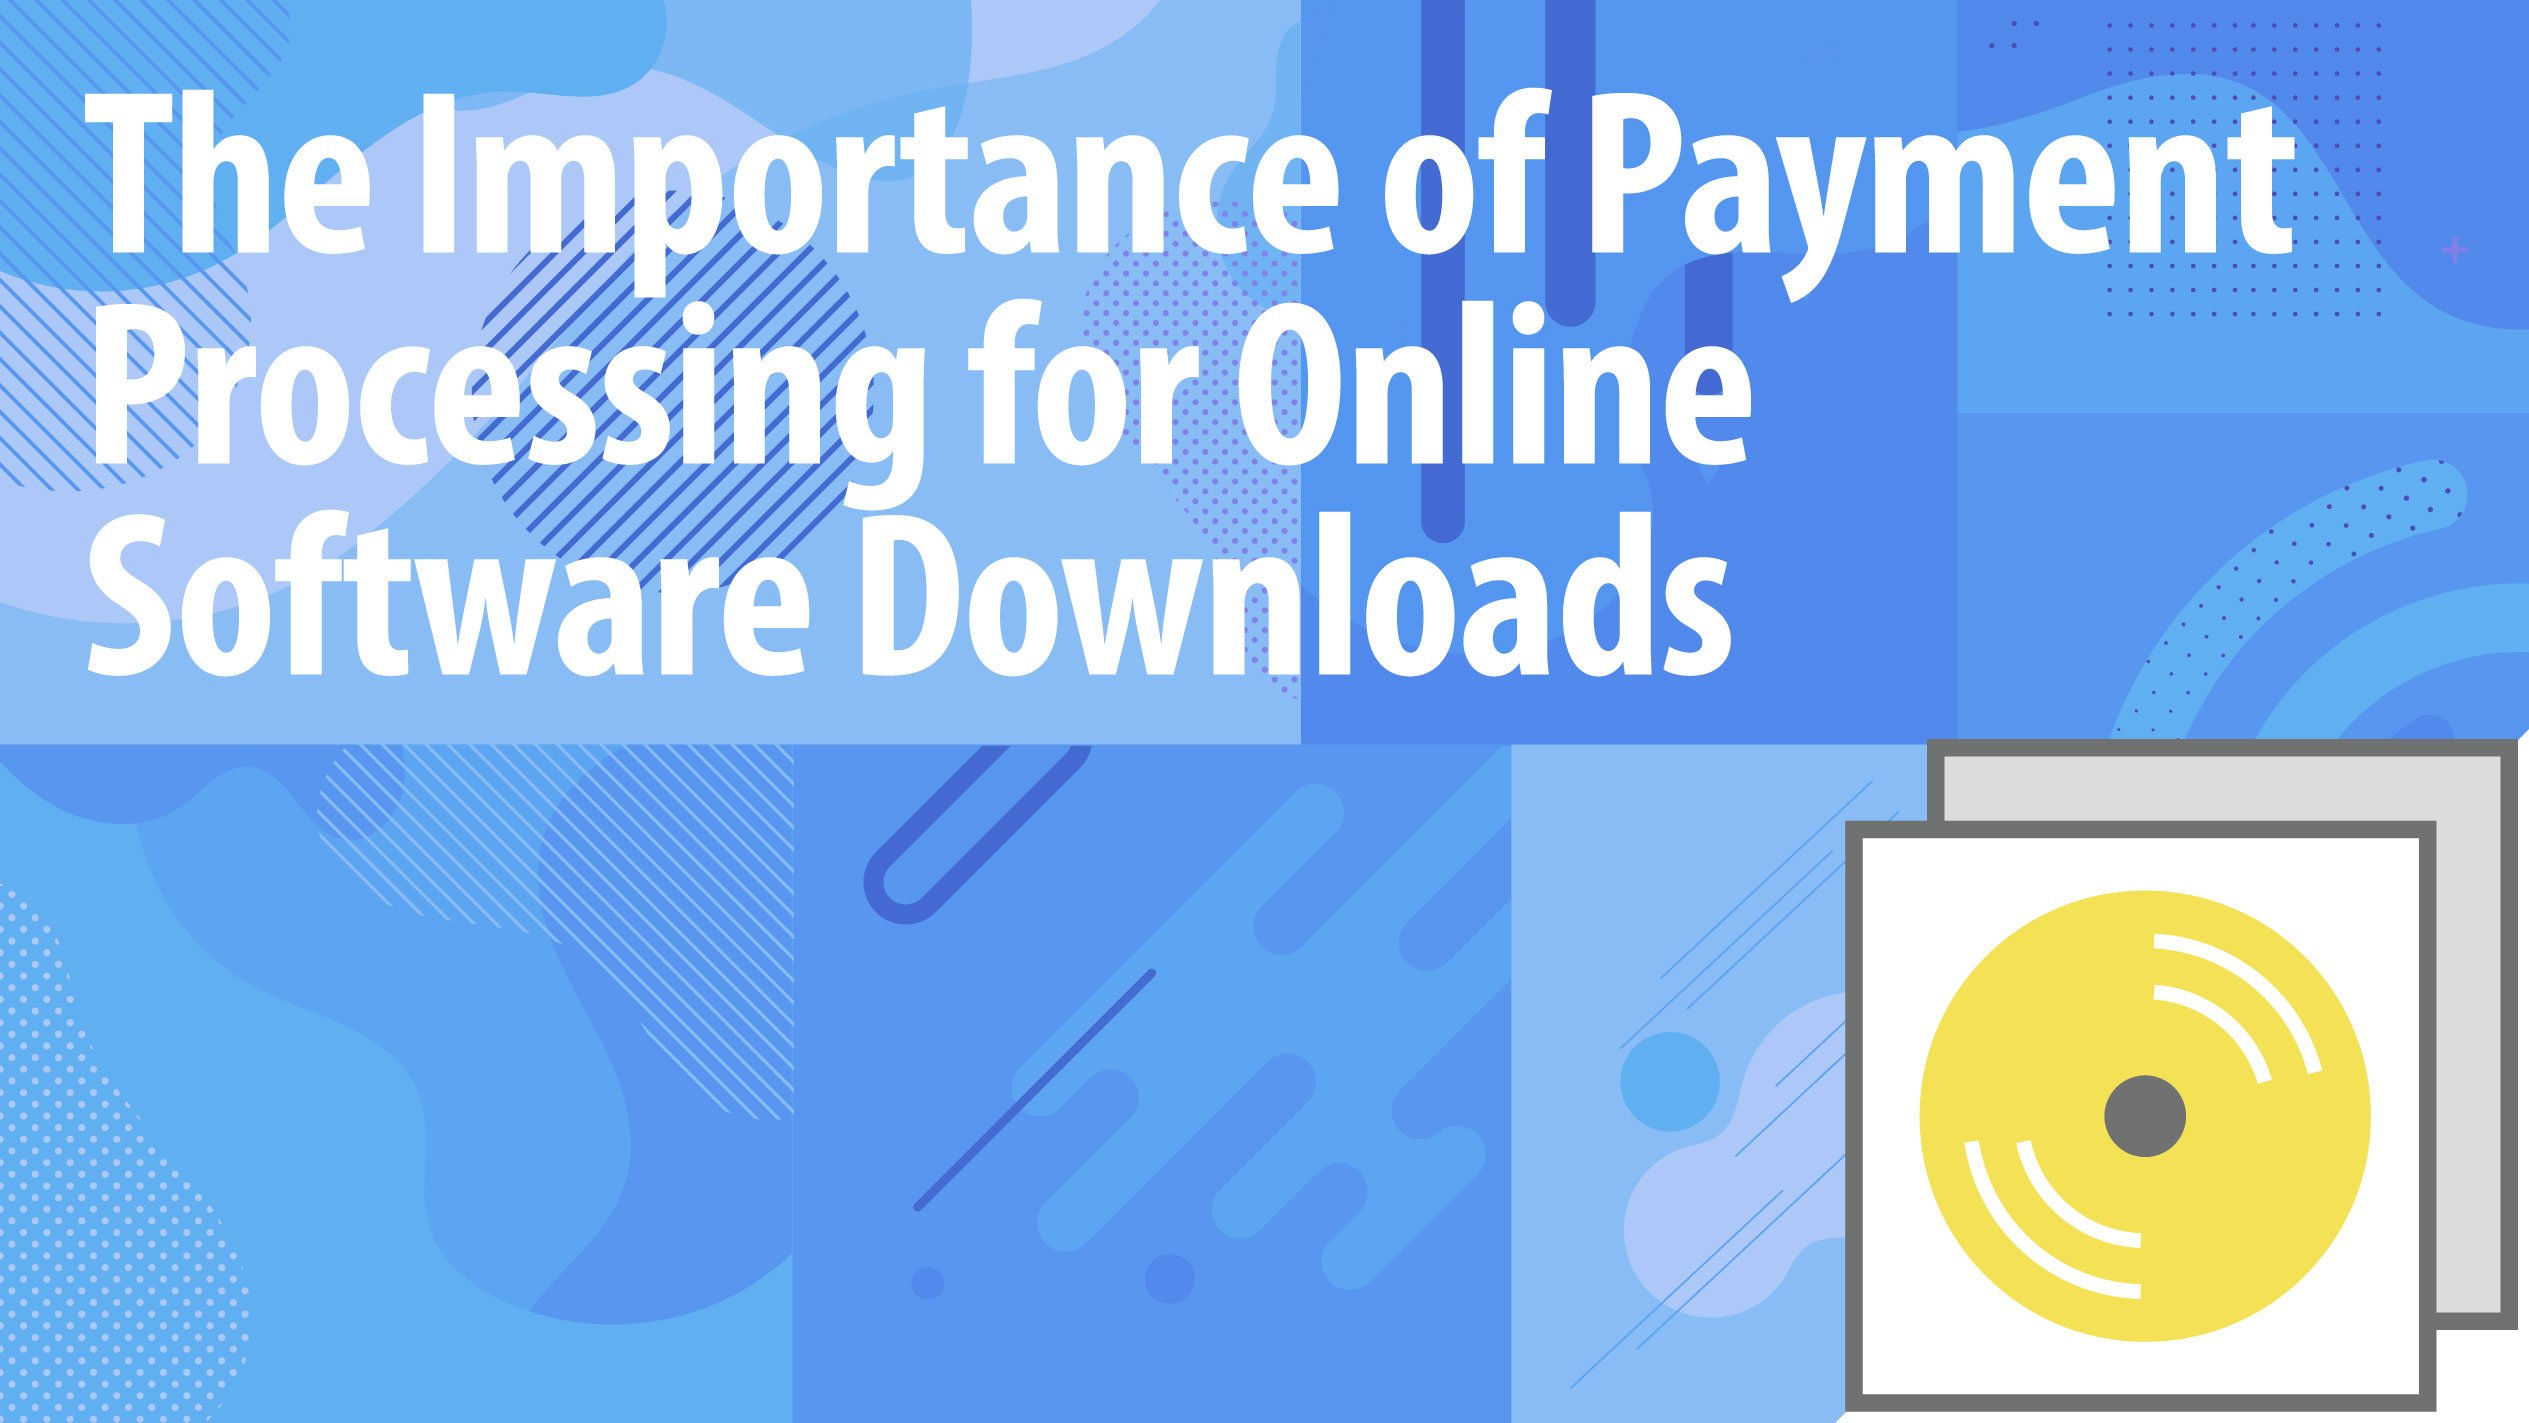 The Importance of Payment Processing for Online Software Downloads